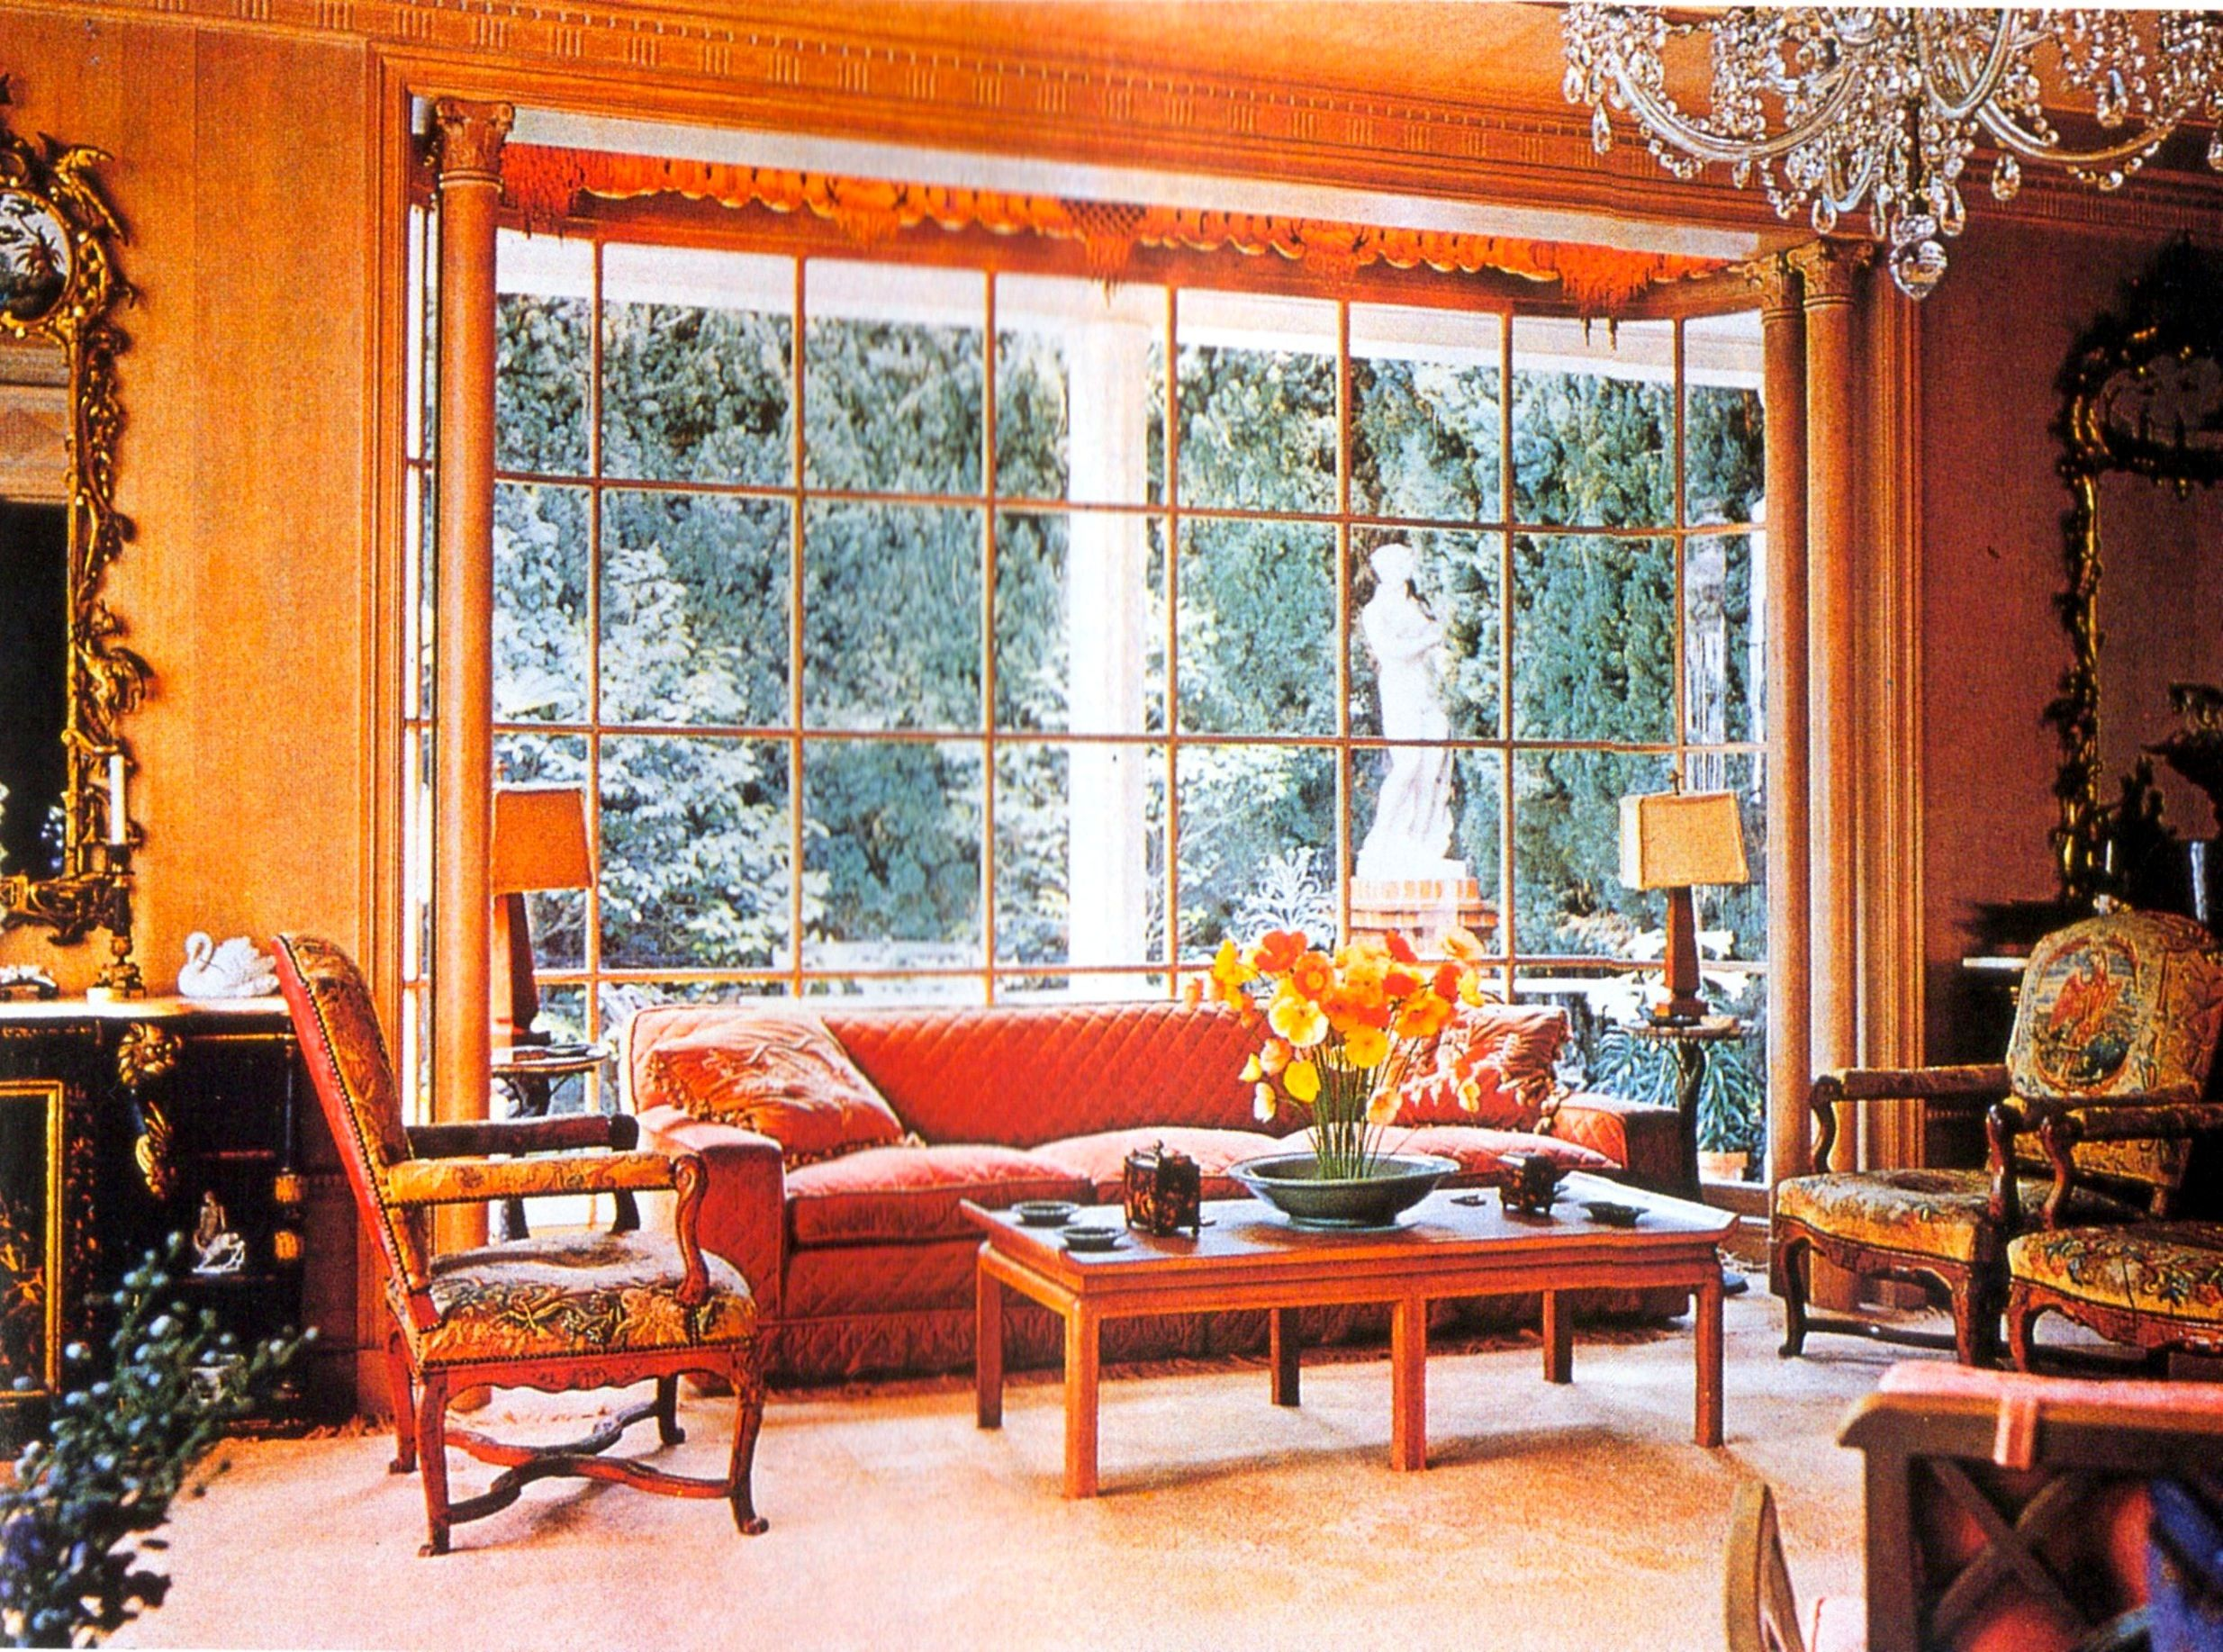 william haines interiors  cukor estate   Vintage Los Angeles     william haines interiors  cukor estate